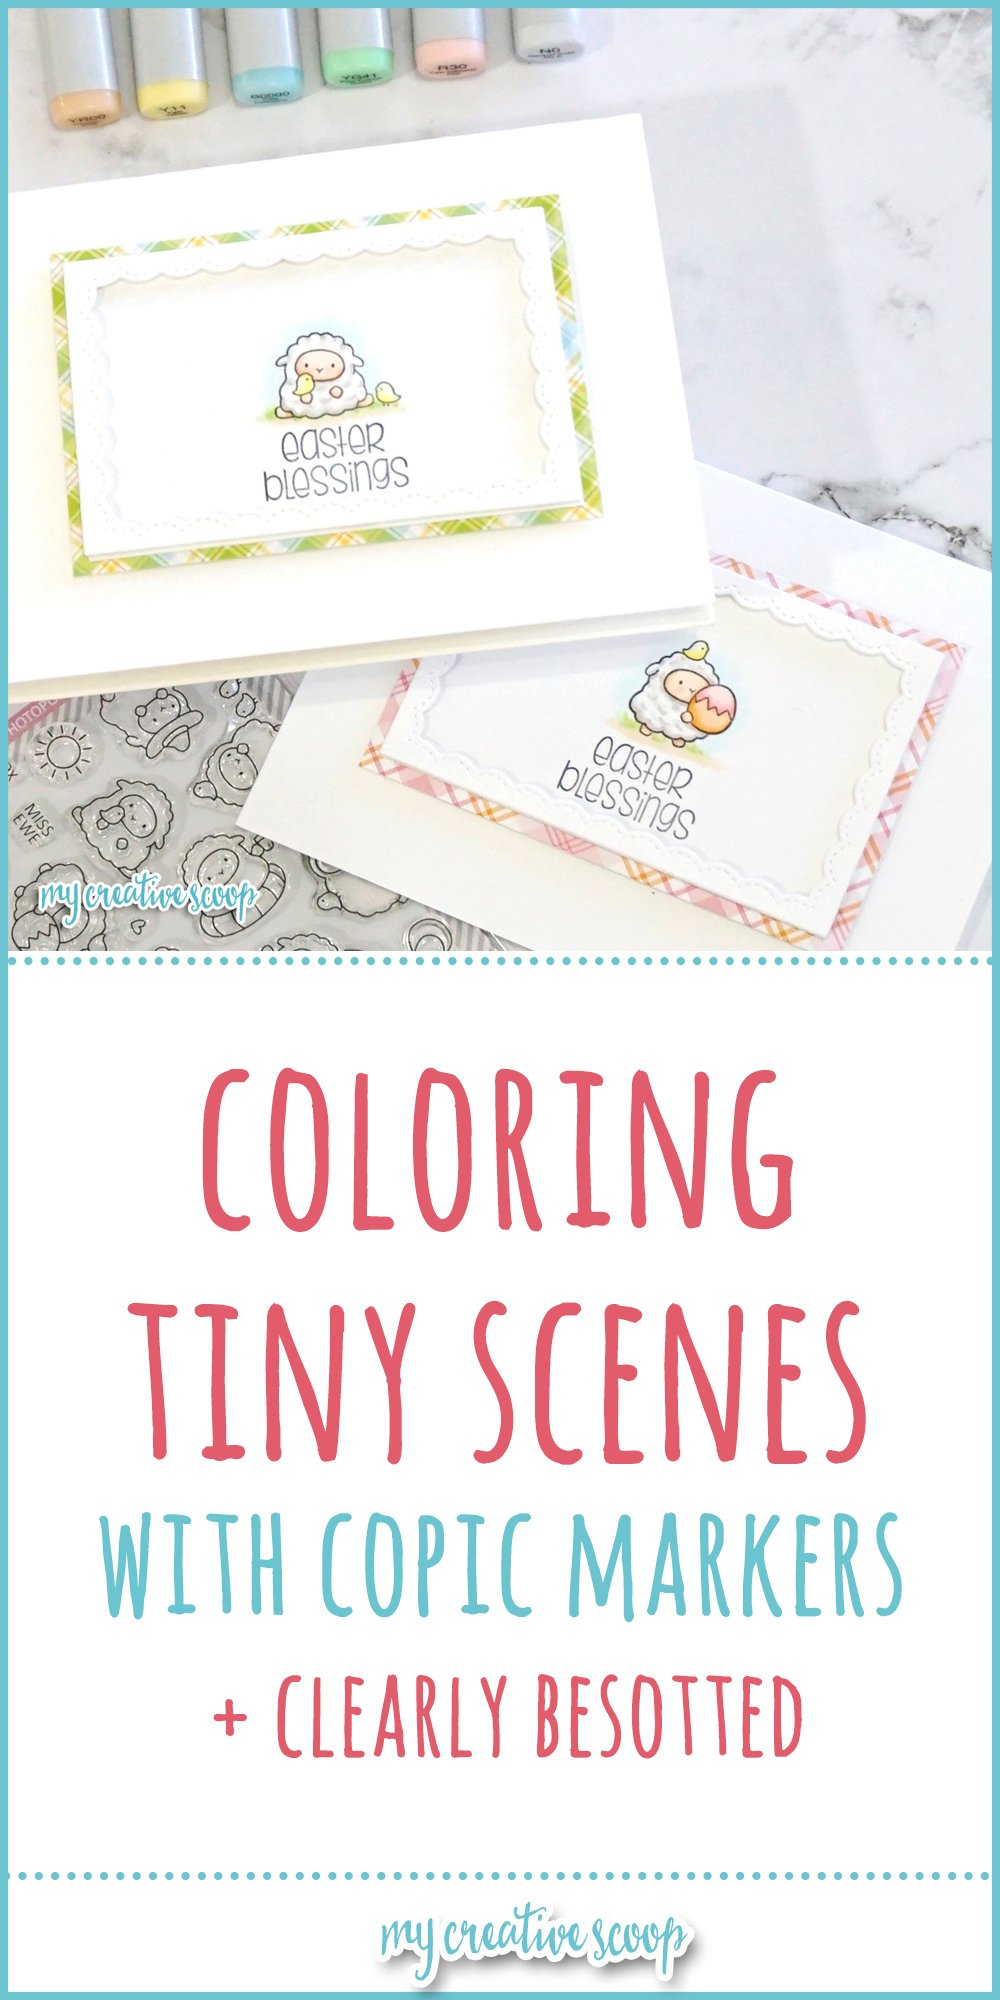 Coloring Tiny Scenes with Copic Markers